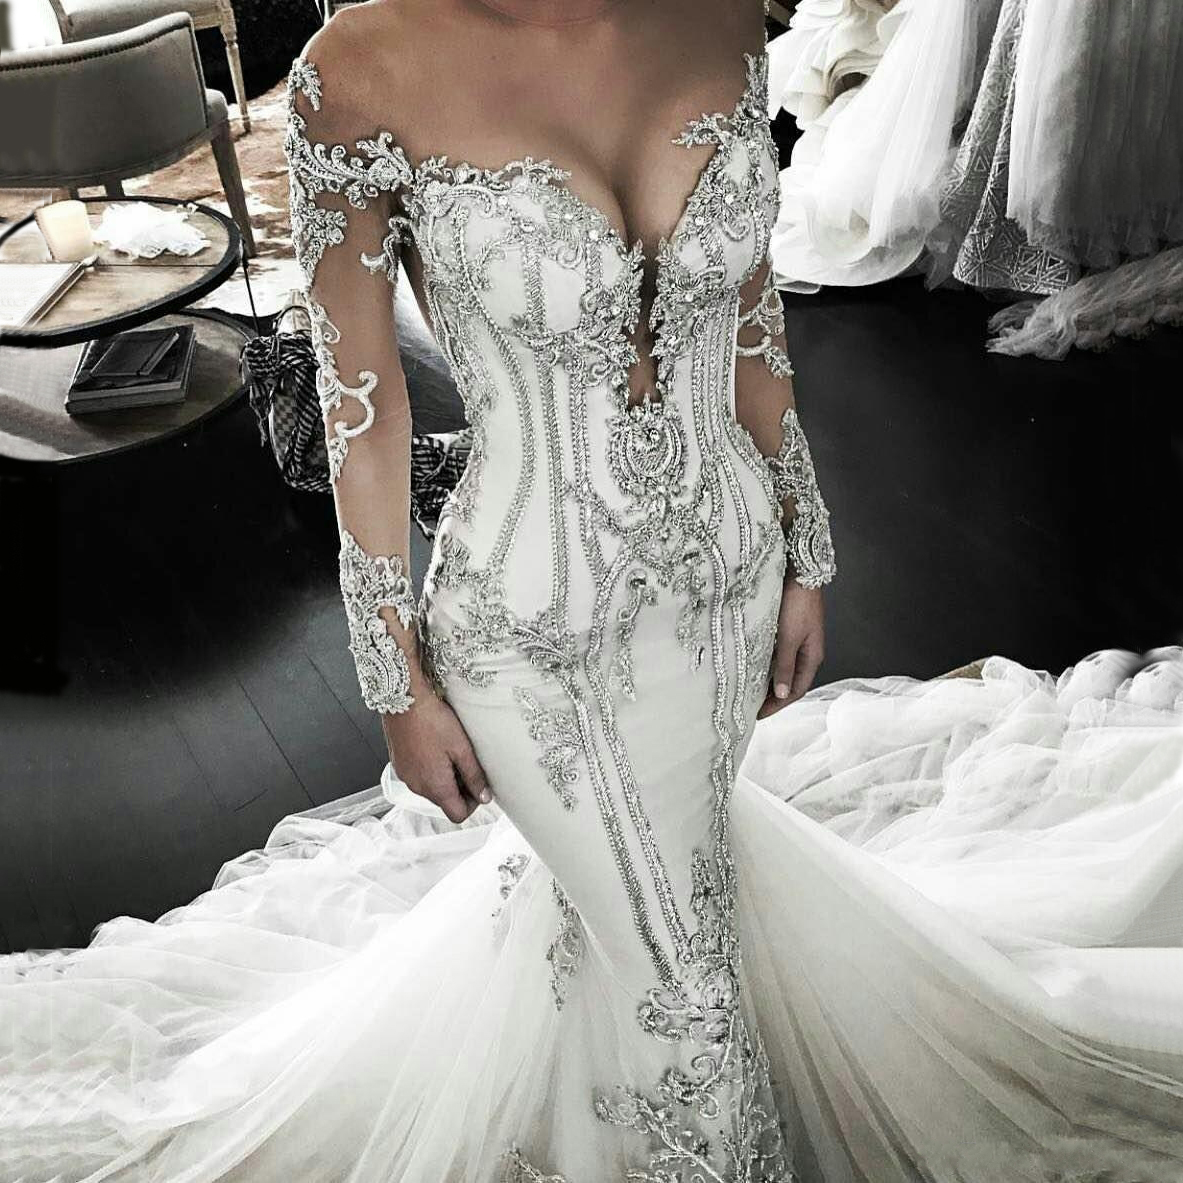 Select A Mermaid Wedding Dress To Show The Bride\'s Stature